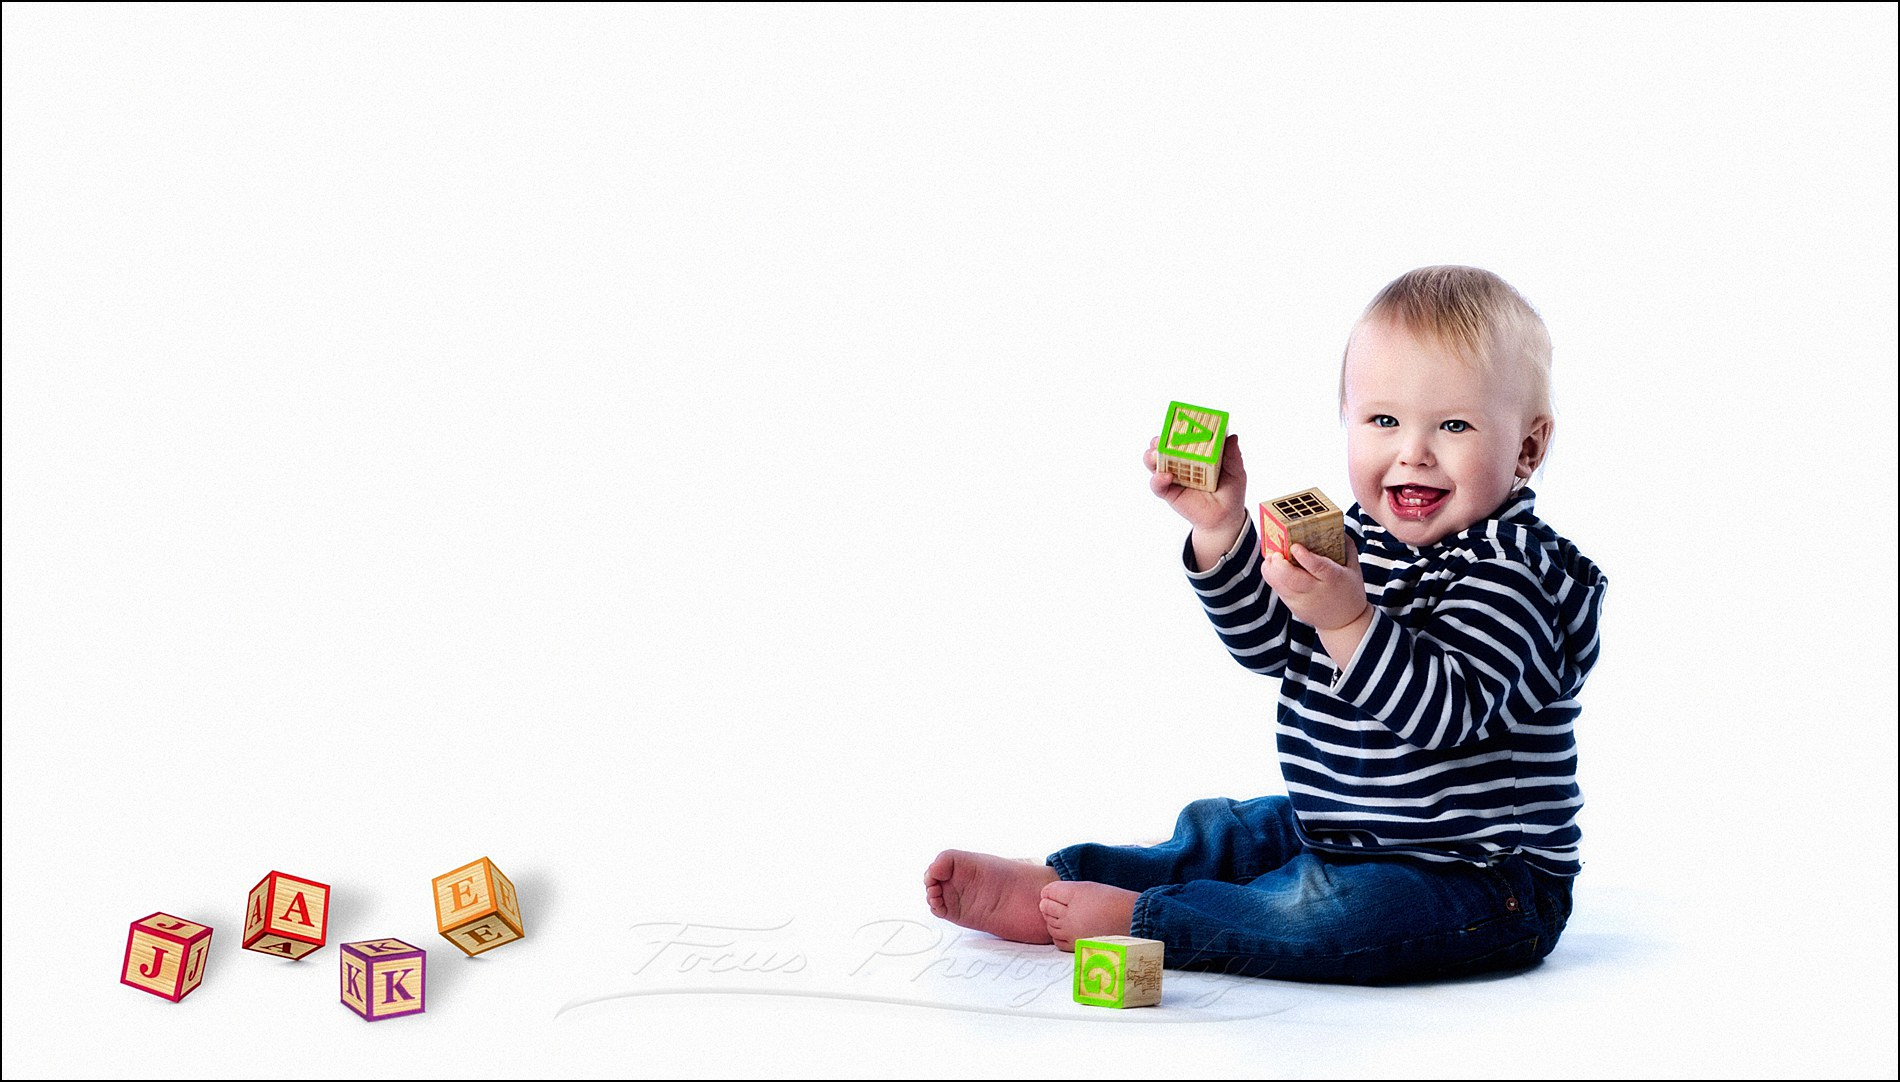 baby boy plays with blocks that spell out his name